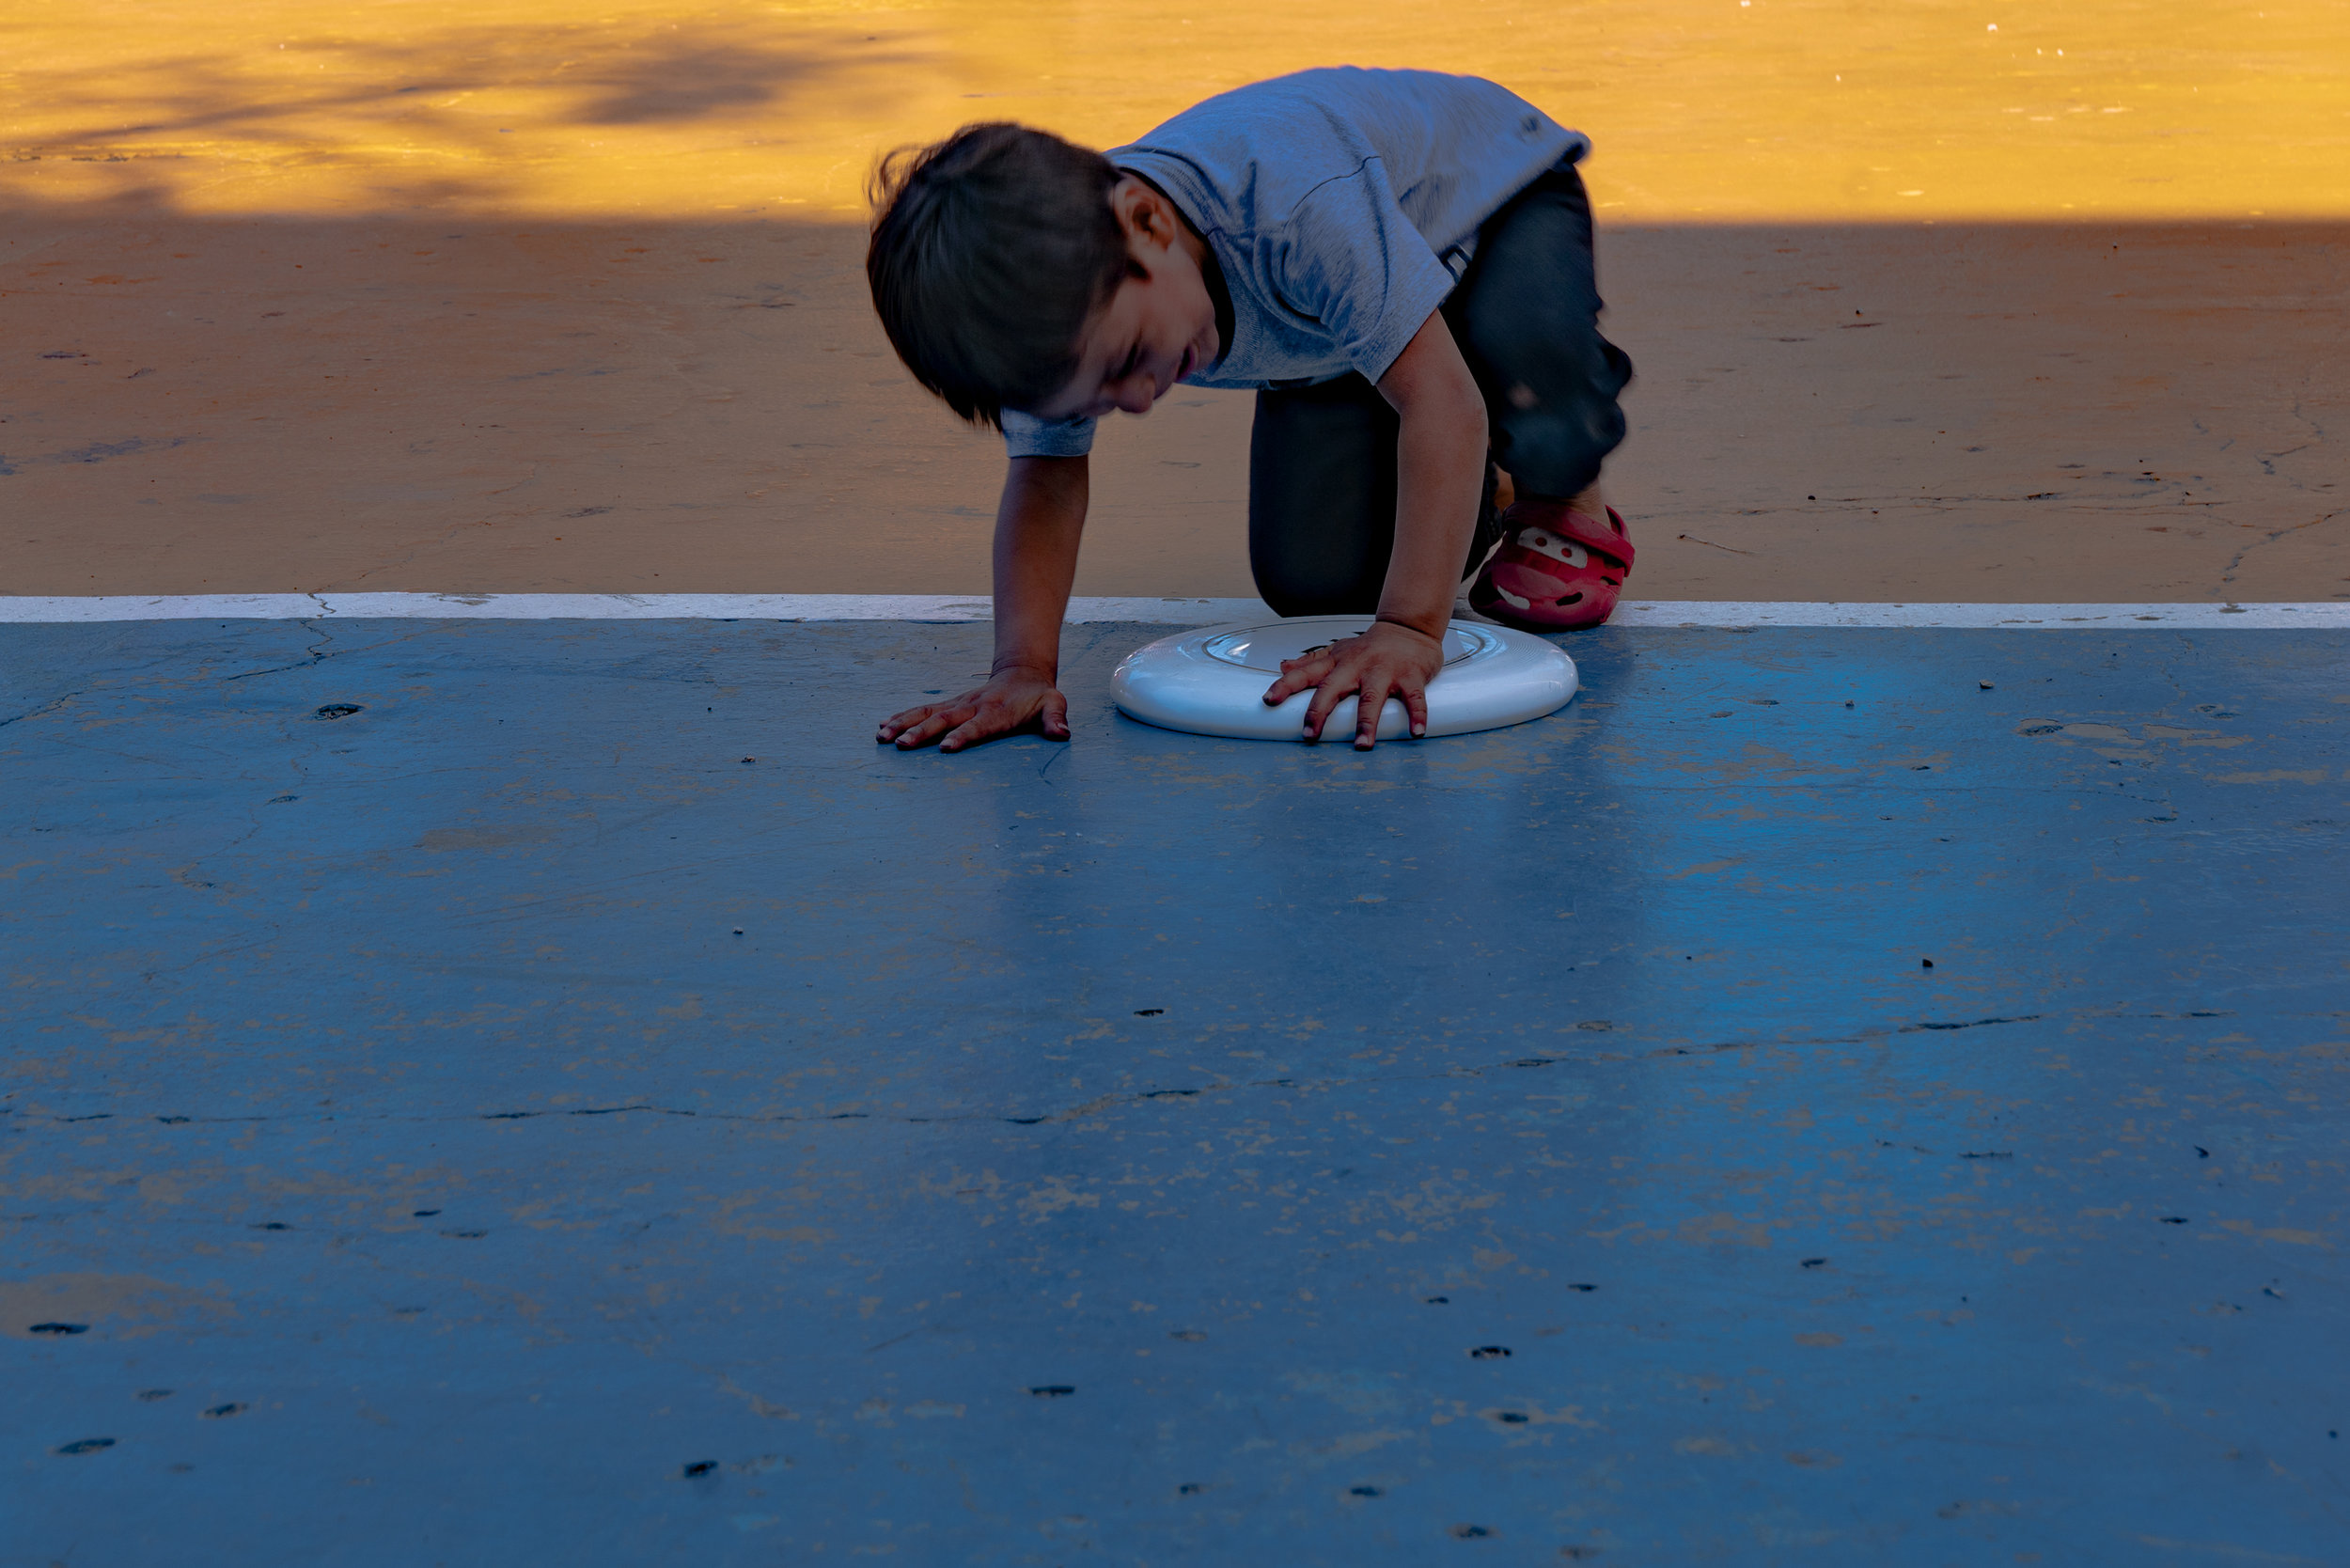 A young boy plays with a Frisbee at a park by the refugee shelter that we visited.